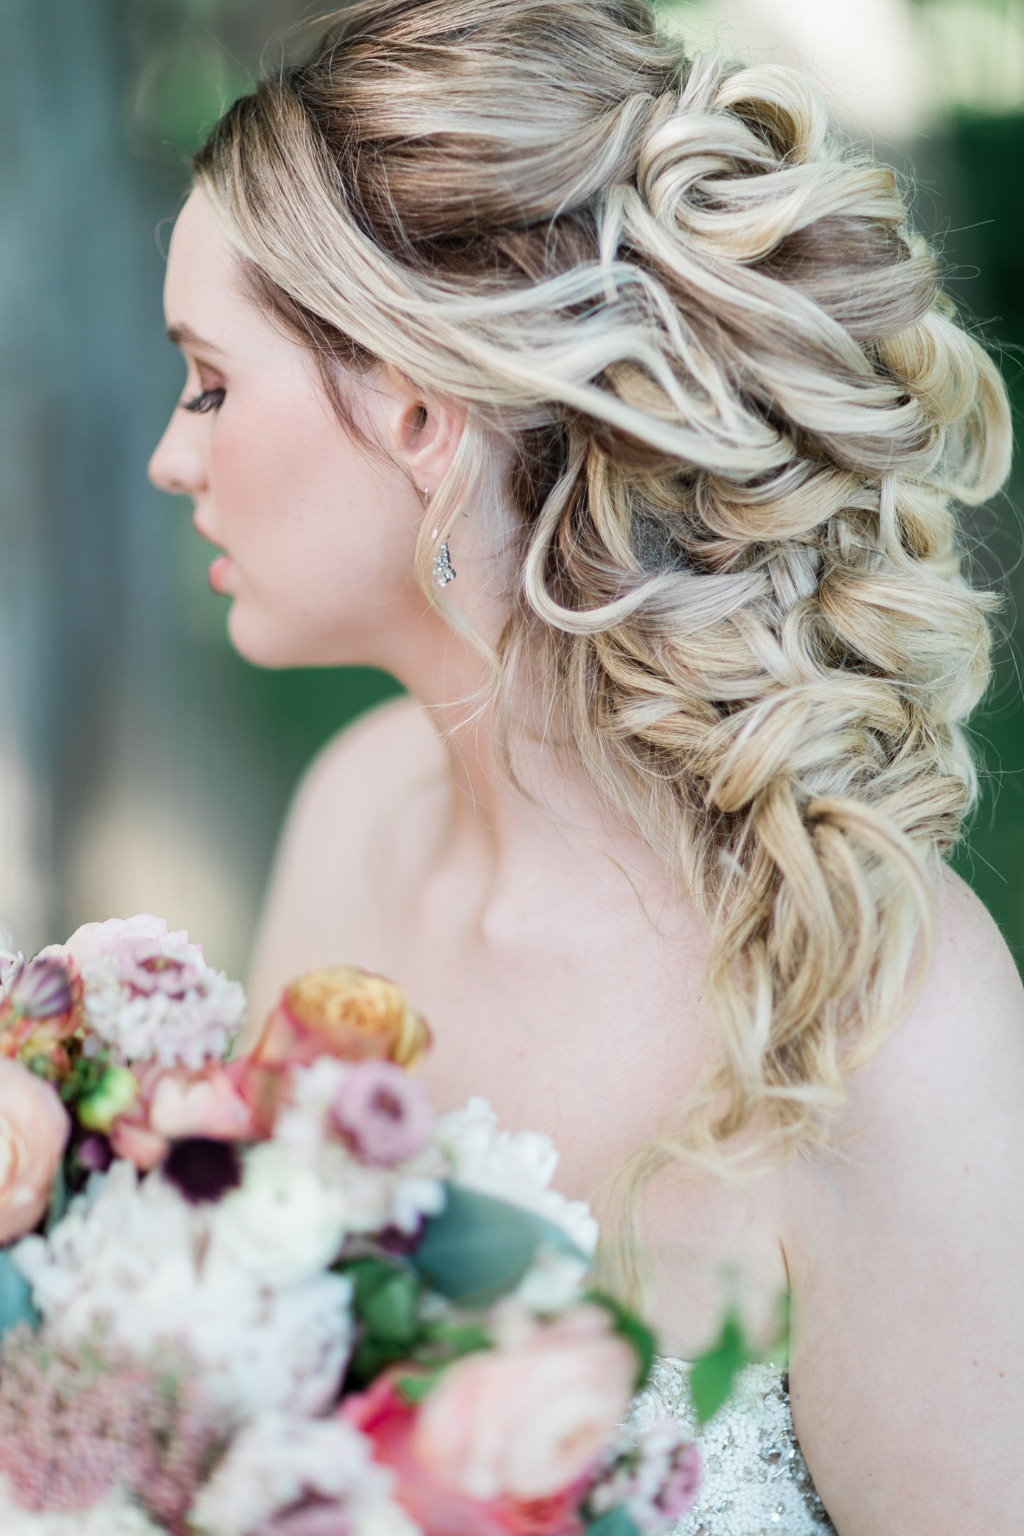 Bridal Hair Goodness!